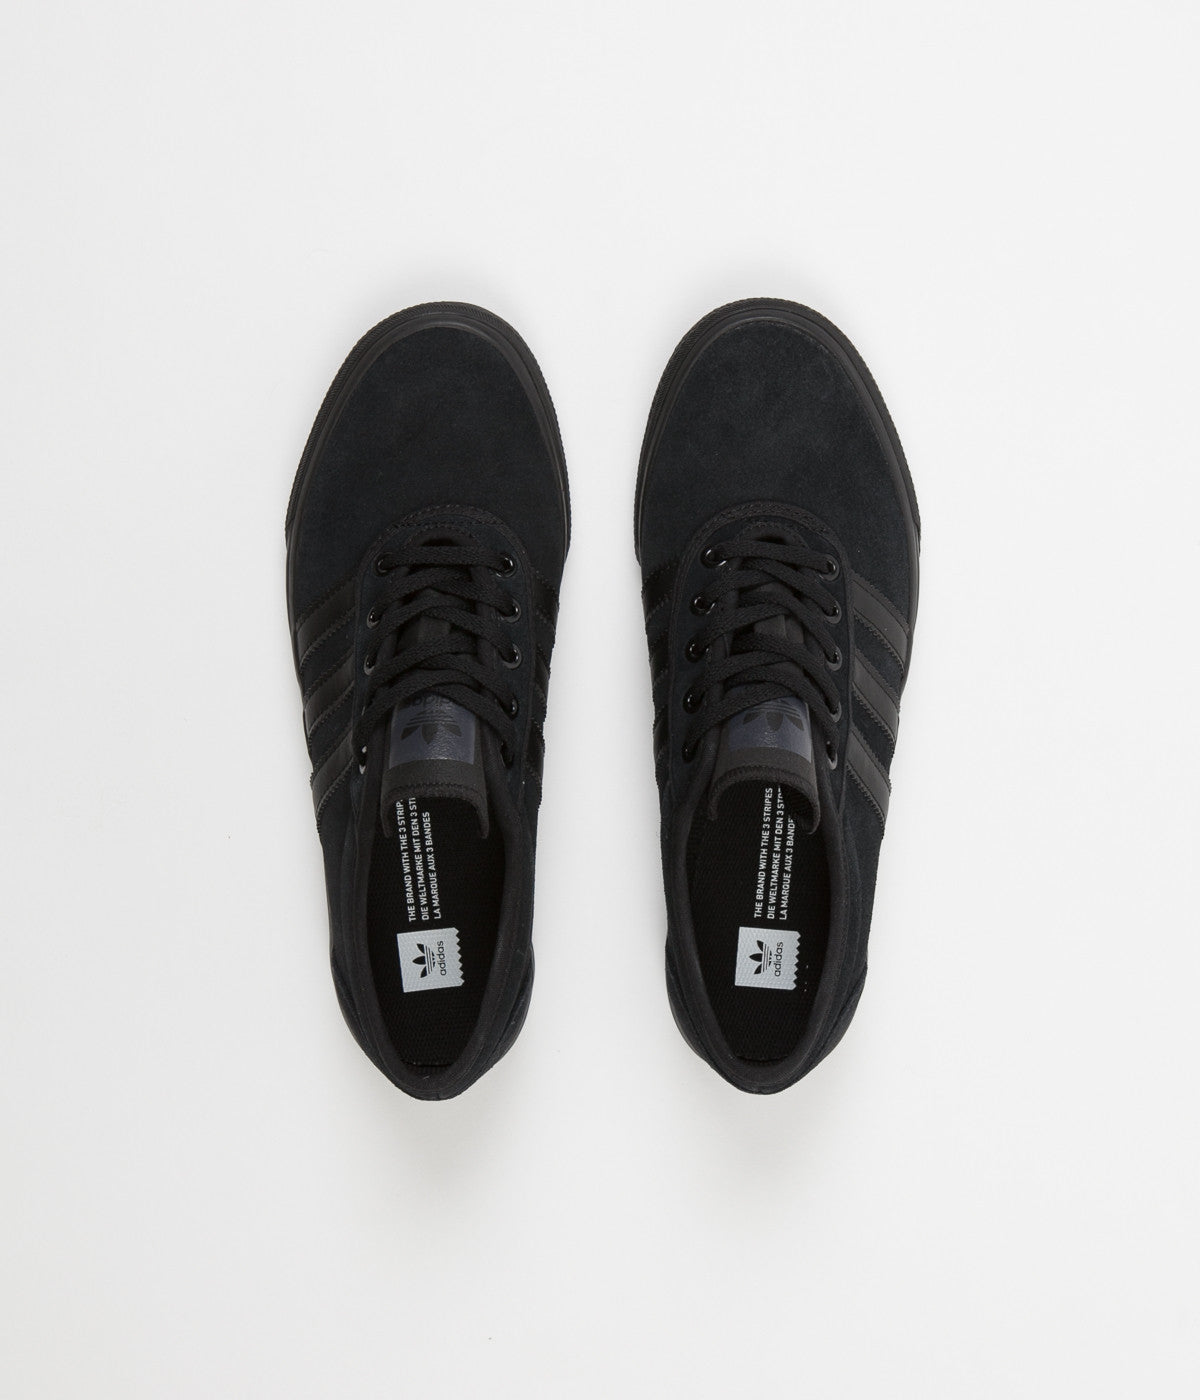 Adidas Adi-Ease Shoes - Core Black / Core Black / Core Black